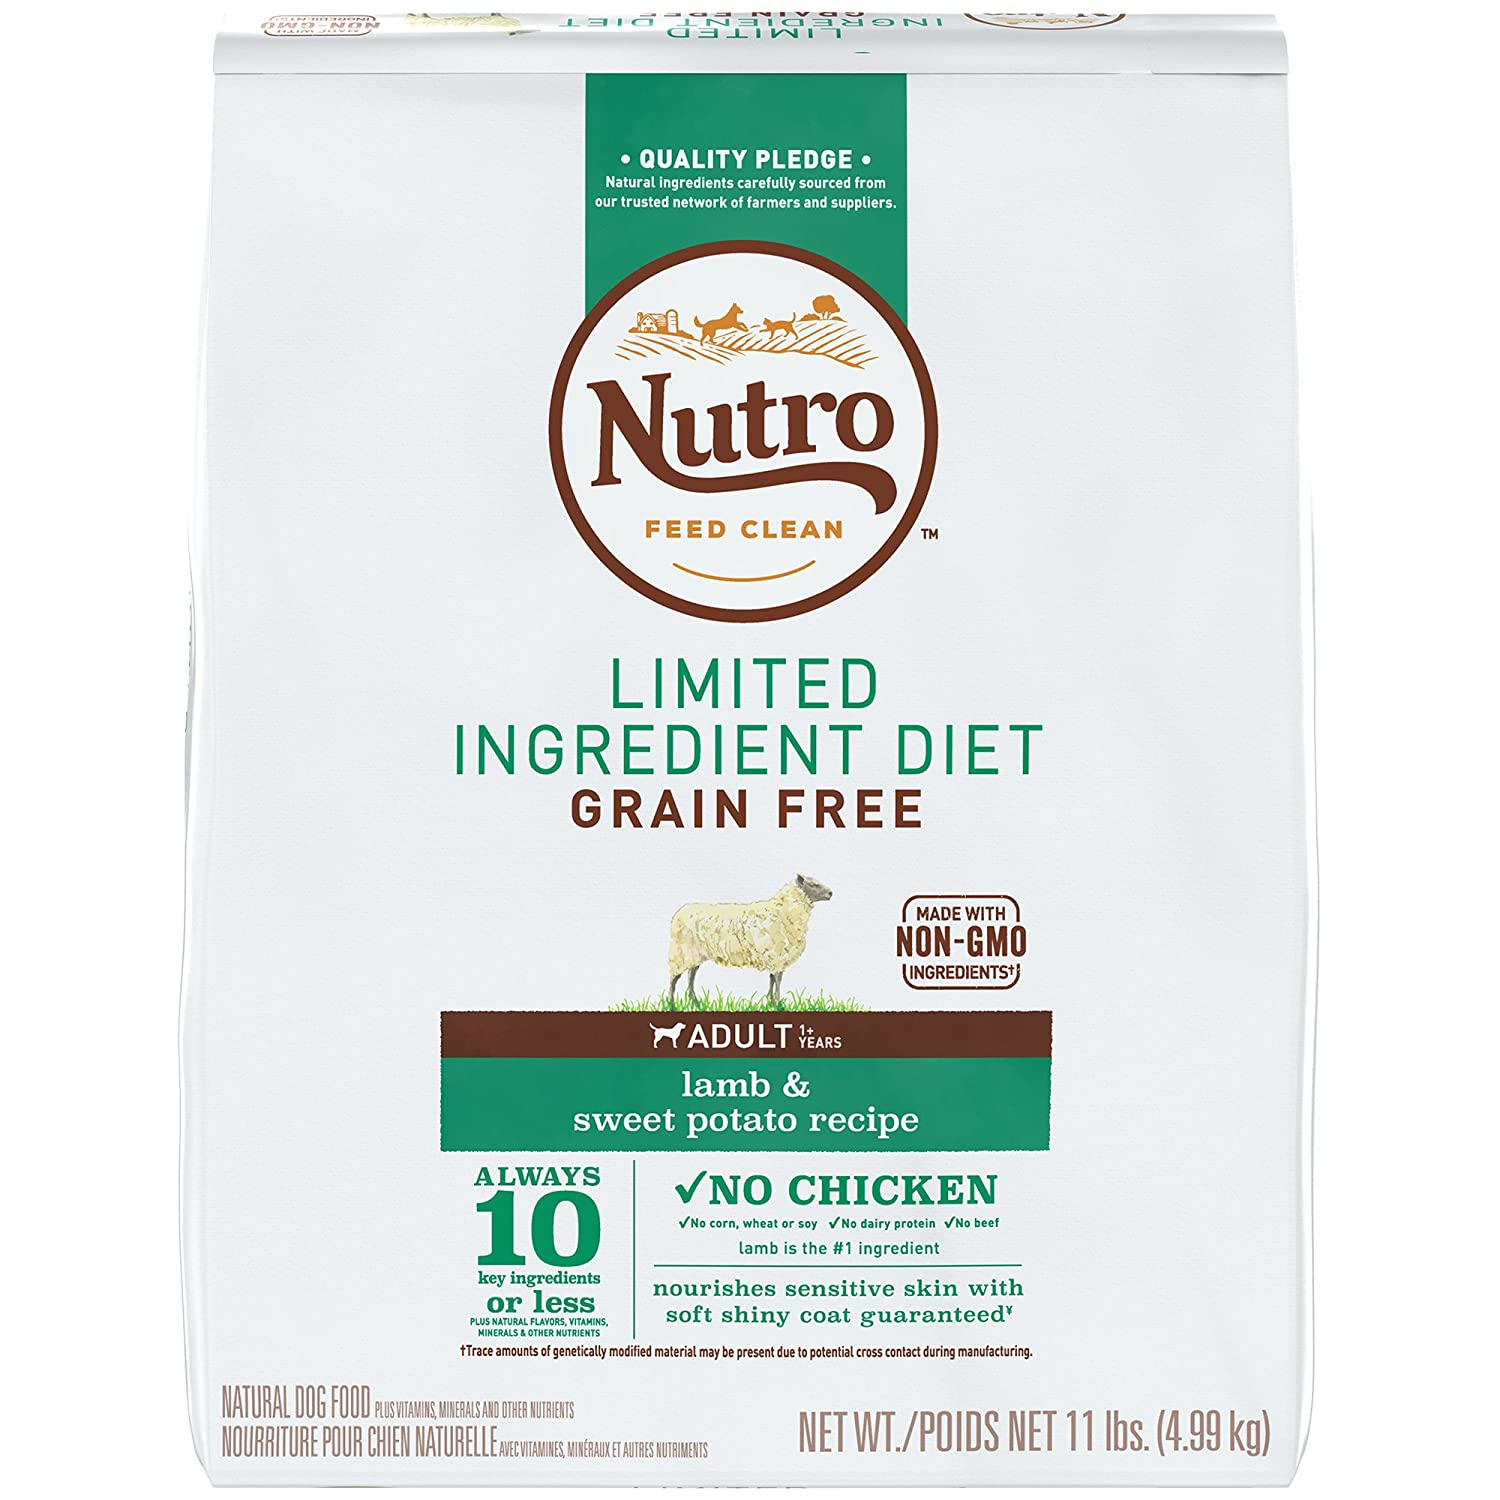 NUTRO LIMITED INGREDIENT GRAIN-FREE DRY DOG FOOD